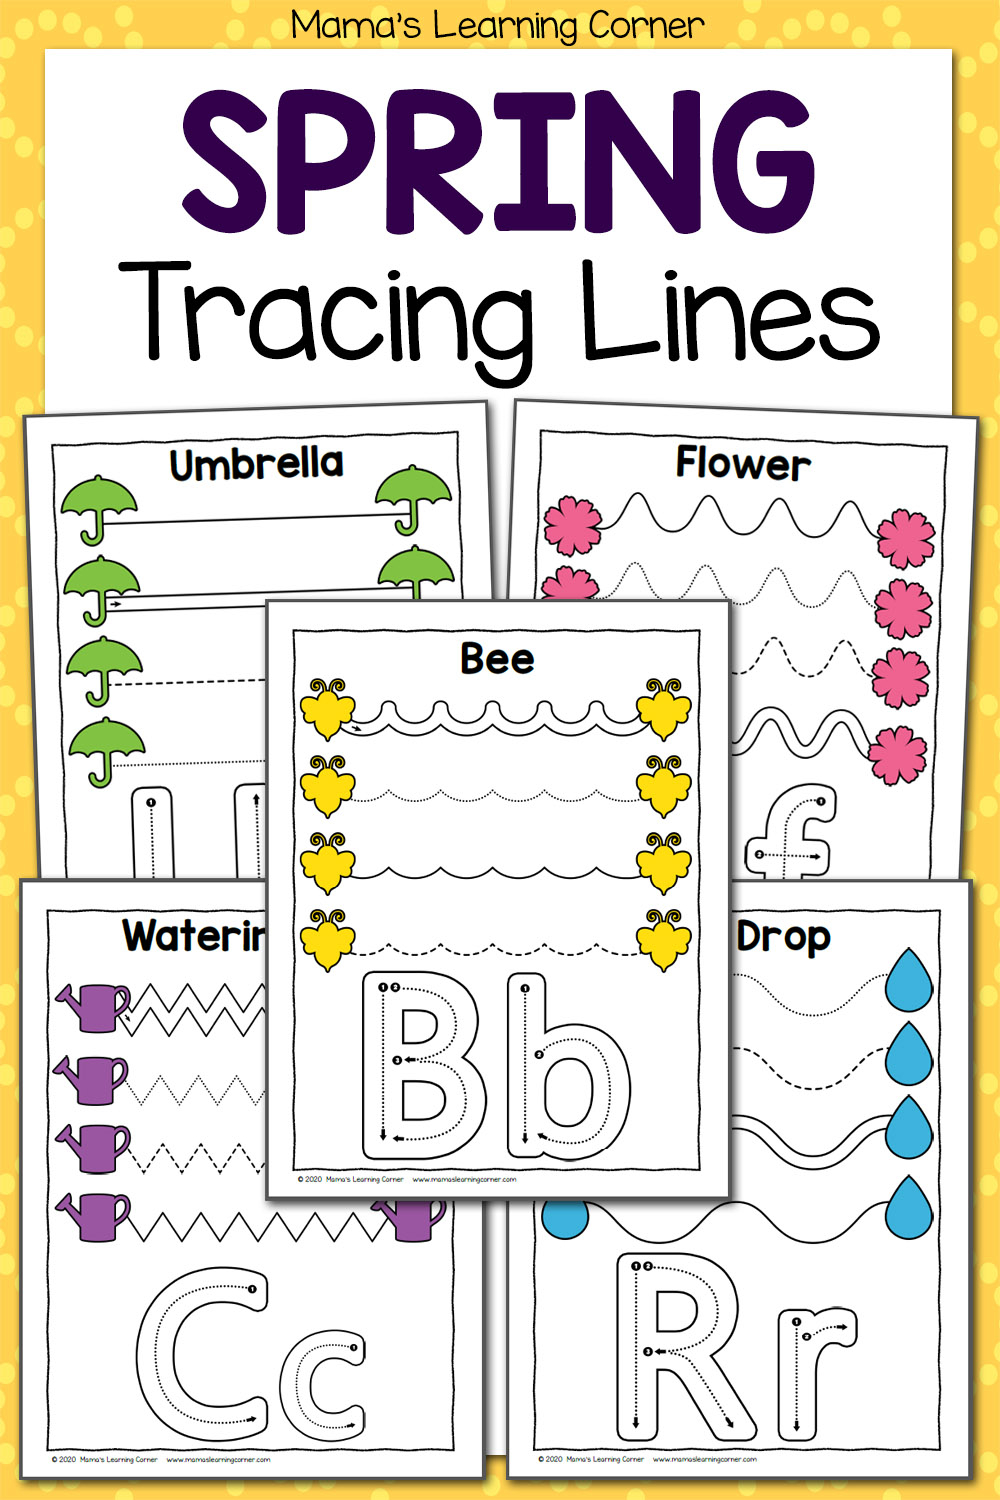 Spring Tracing Worksheets For Preschool - Mamas Learning Corner